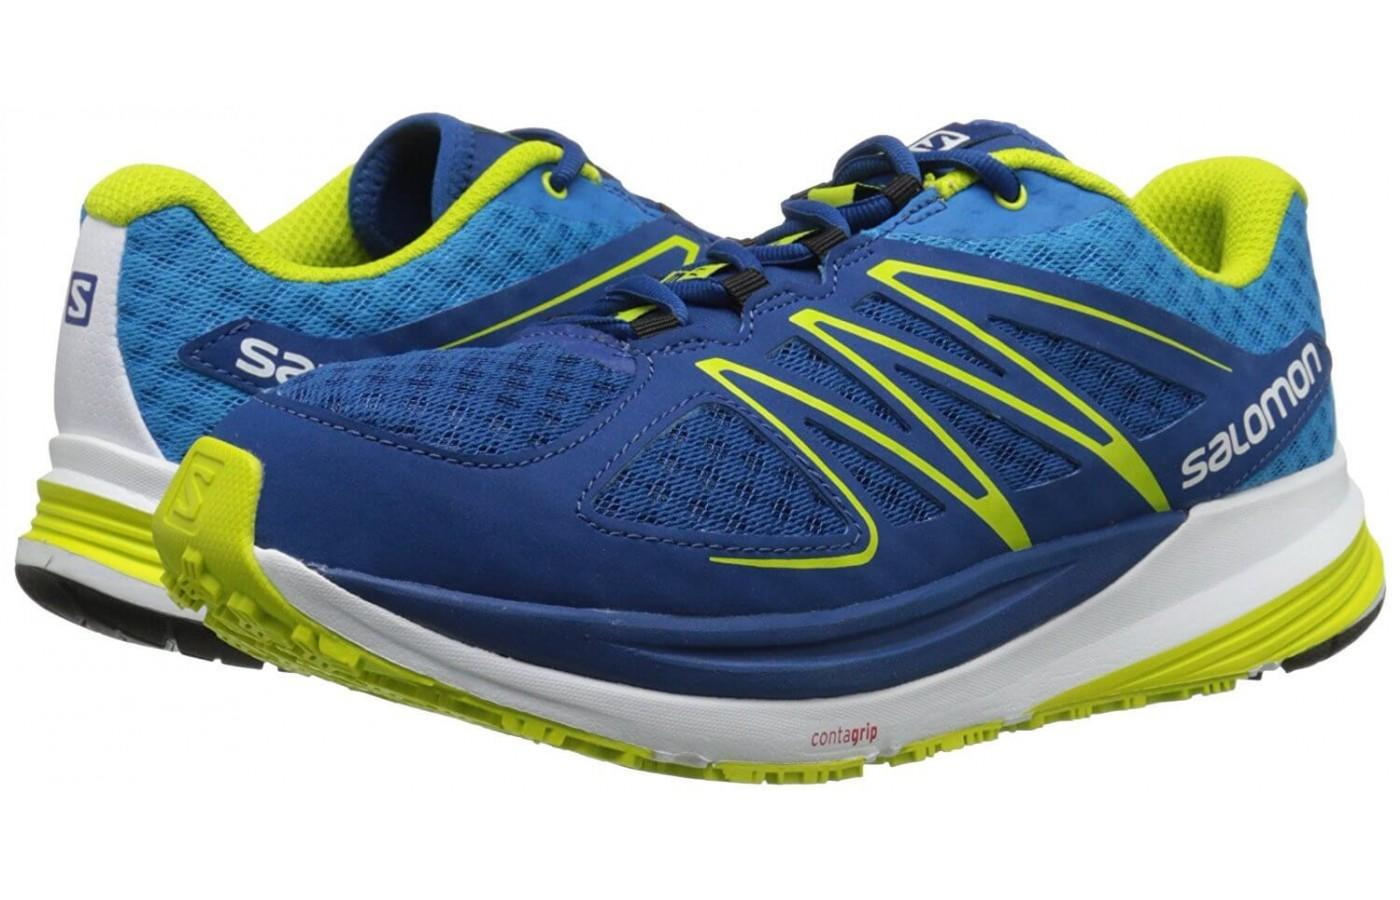 Pair of Salomon Sense Pulse in blue